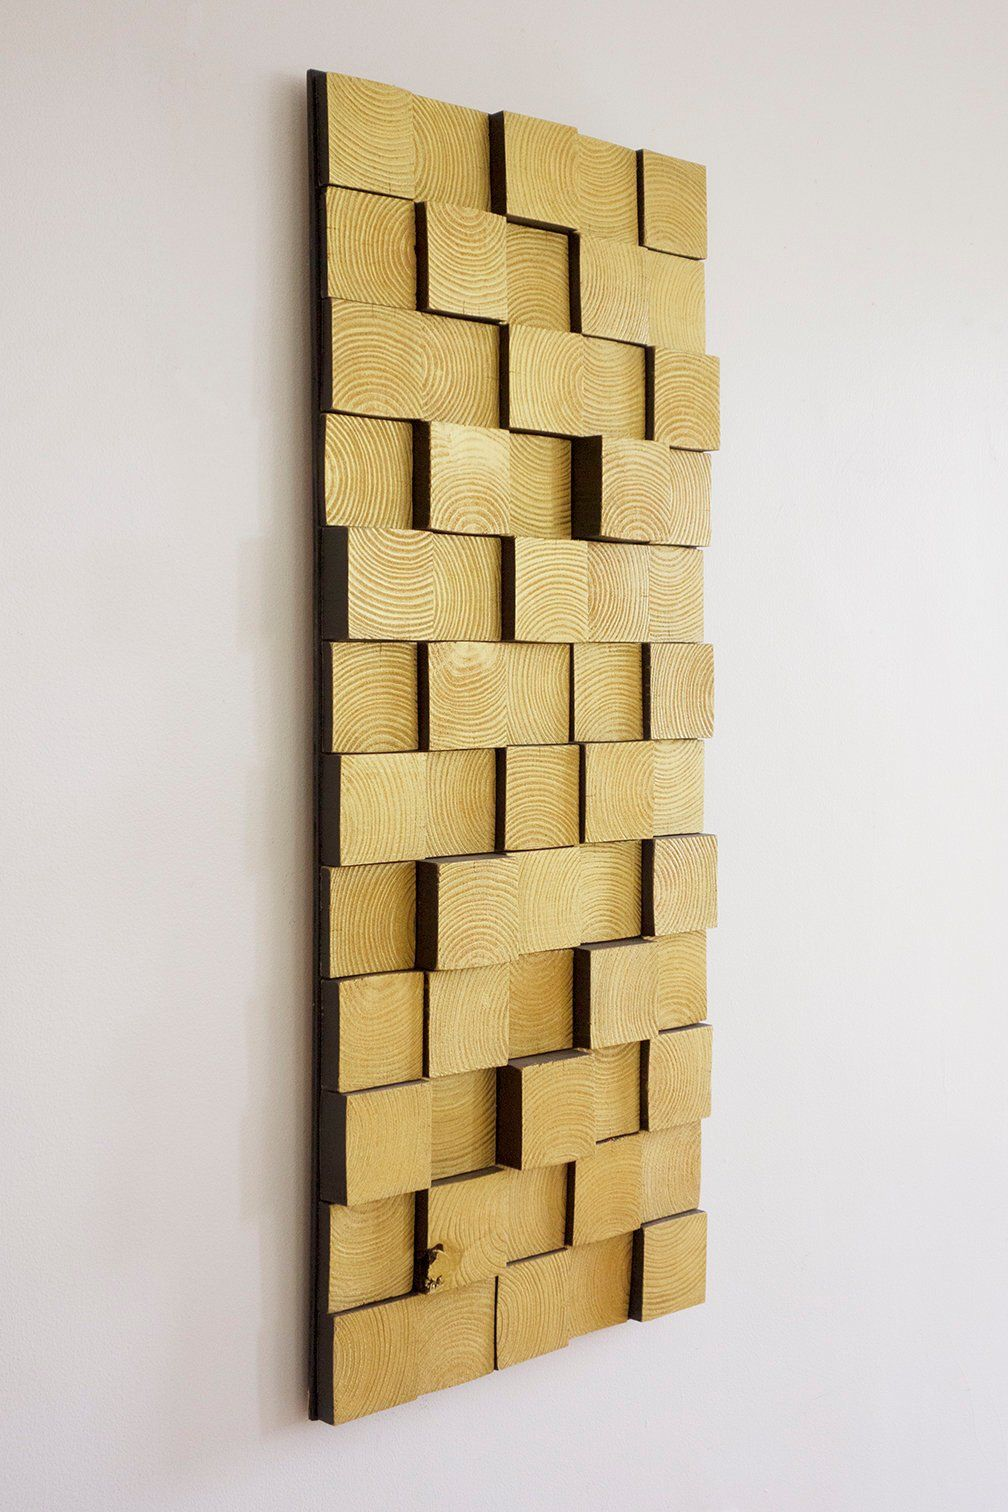 Gold Wall Art Modern Home Decor Mcm Wall Art Sculptural Wood Wall Art Modern Wall Decor Wood Wall Art Rectangle Gold Wall Art Modern Wall Decor Wall Art